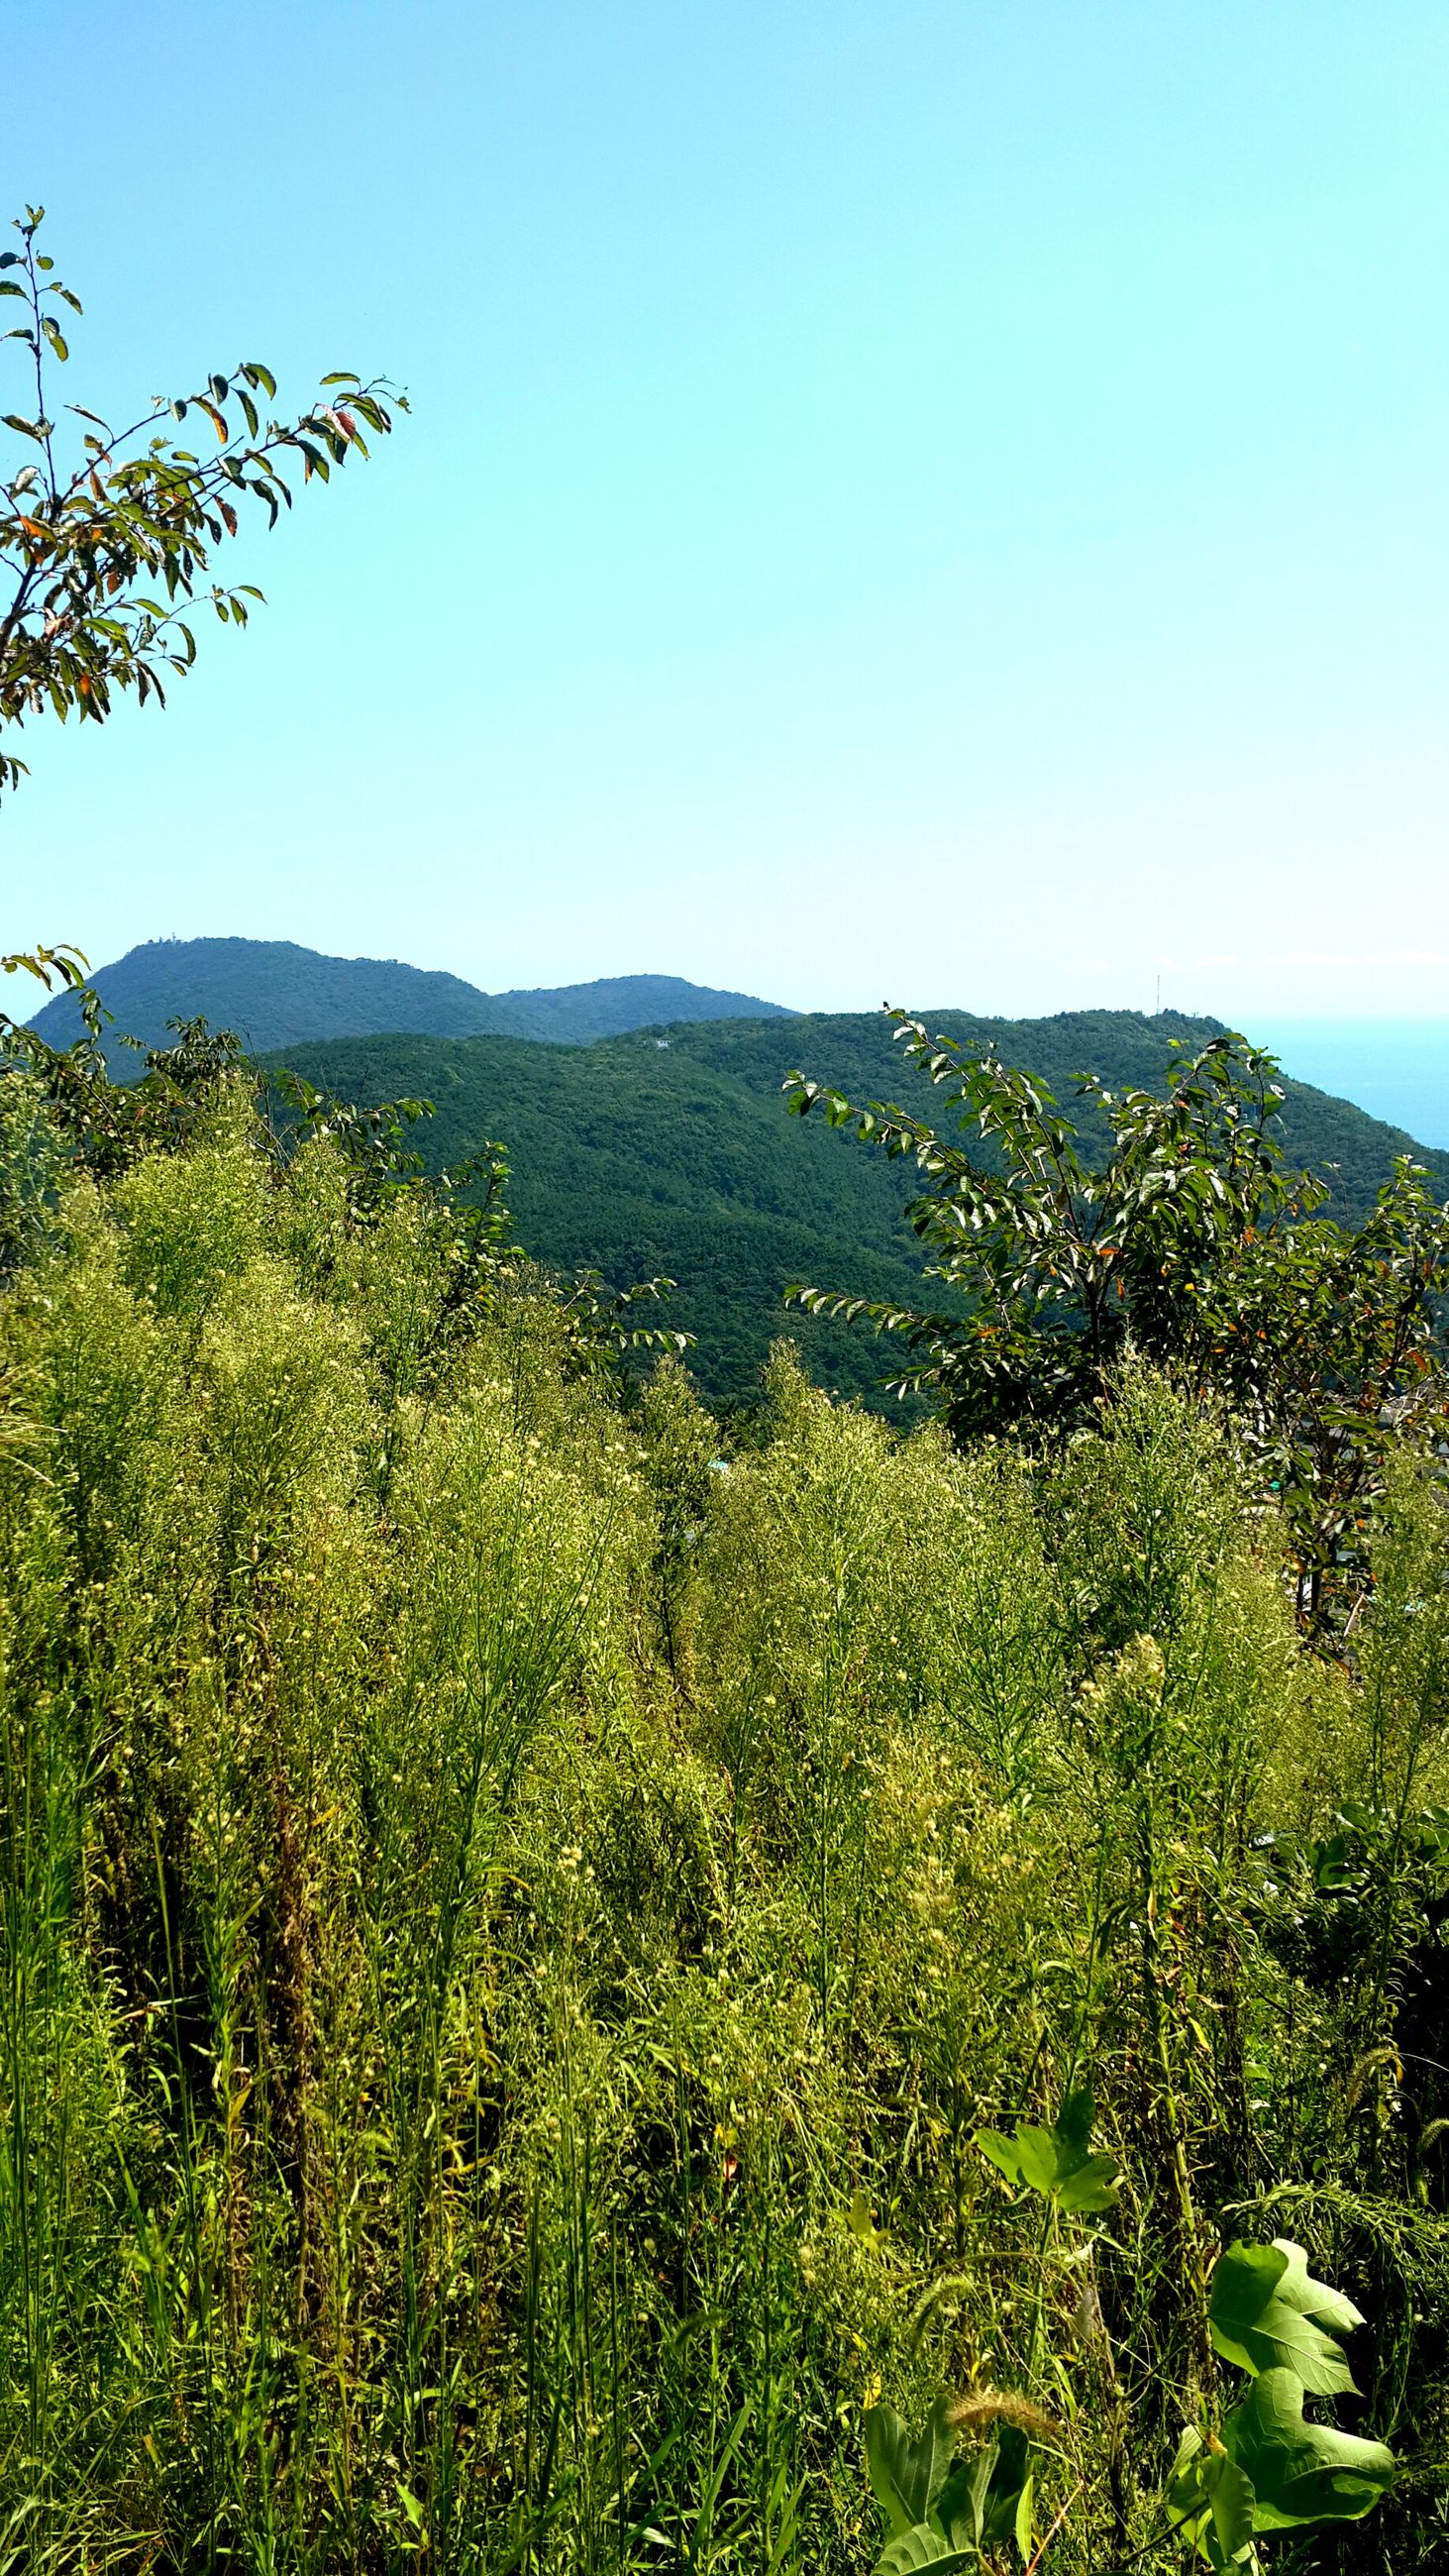 mountain, scenics, tranquil scene, tree, clear sky, green color, growth, landscape, beauty in nature, tranquility, plant, nature, blue, non-urban scene, lush foliage, green, branch, mountain range, day, outdoors, no people, remote, greenery, majestic, growing, valley, solitude